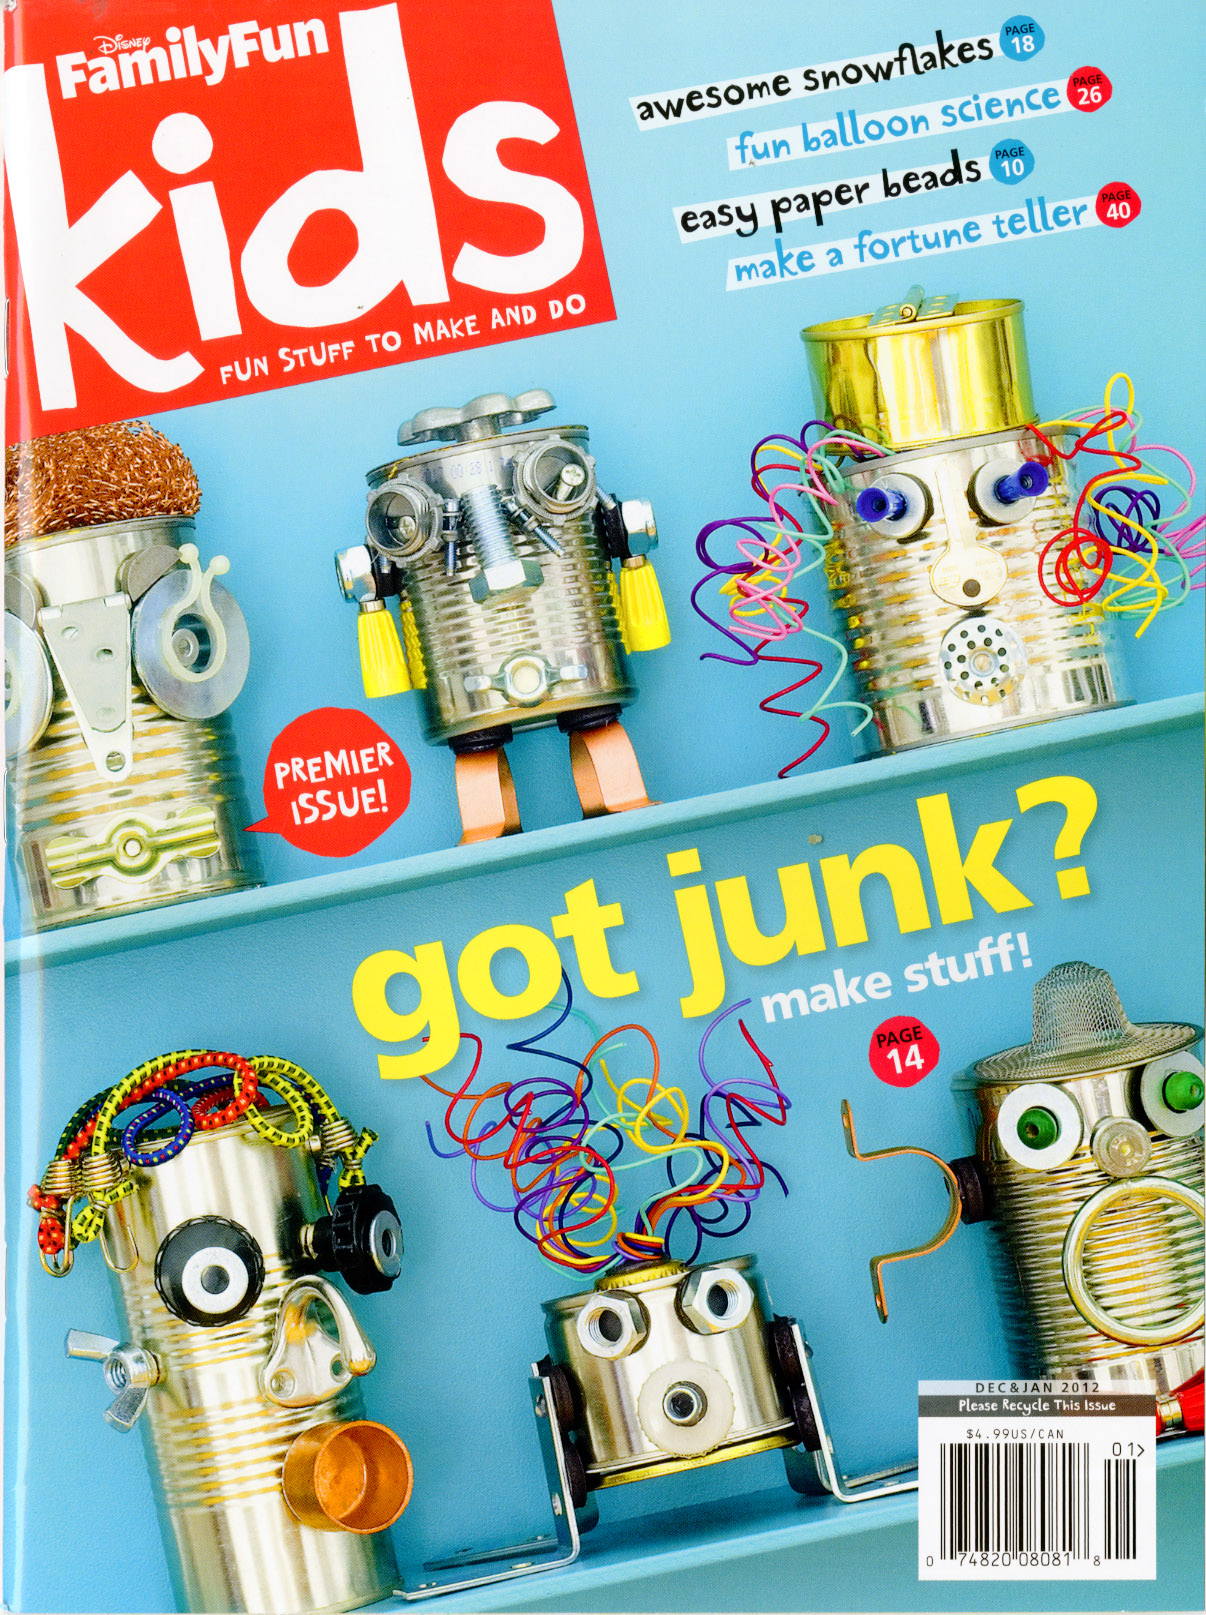 Disney family fun kids fun things to make and do the new magazine from